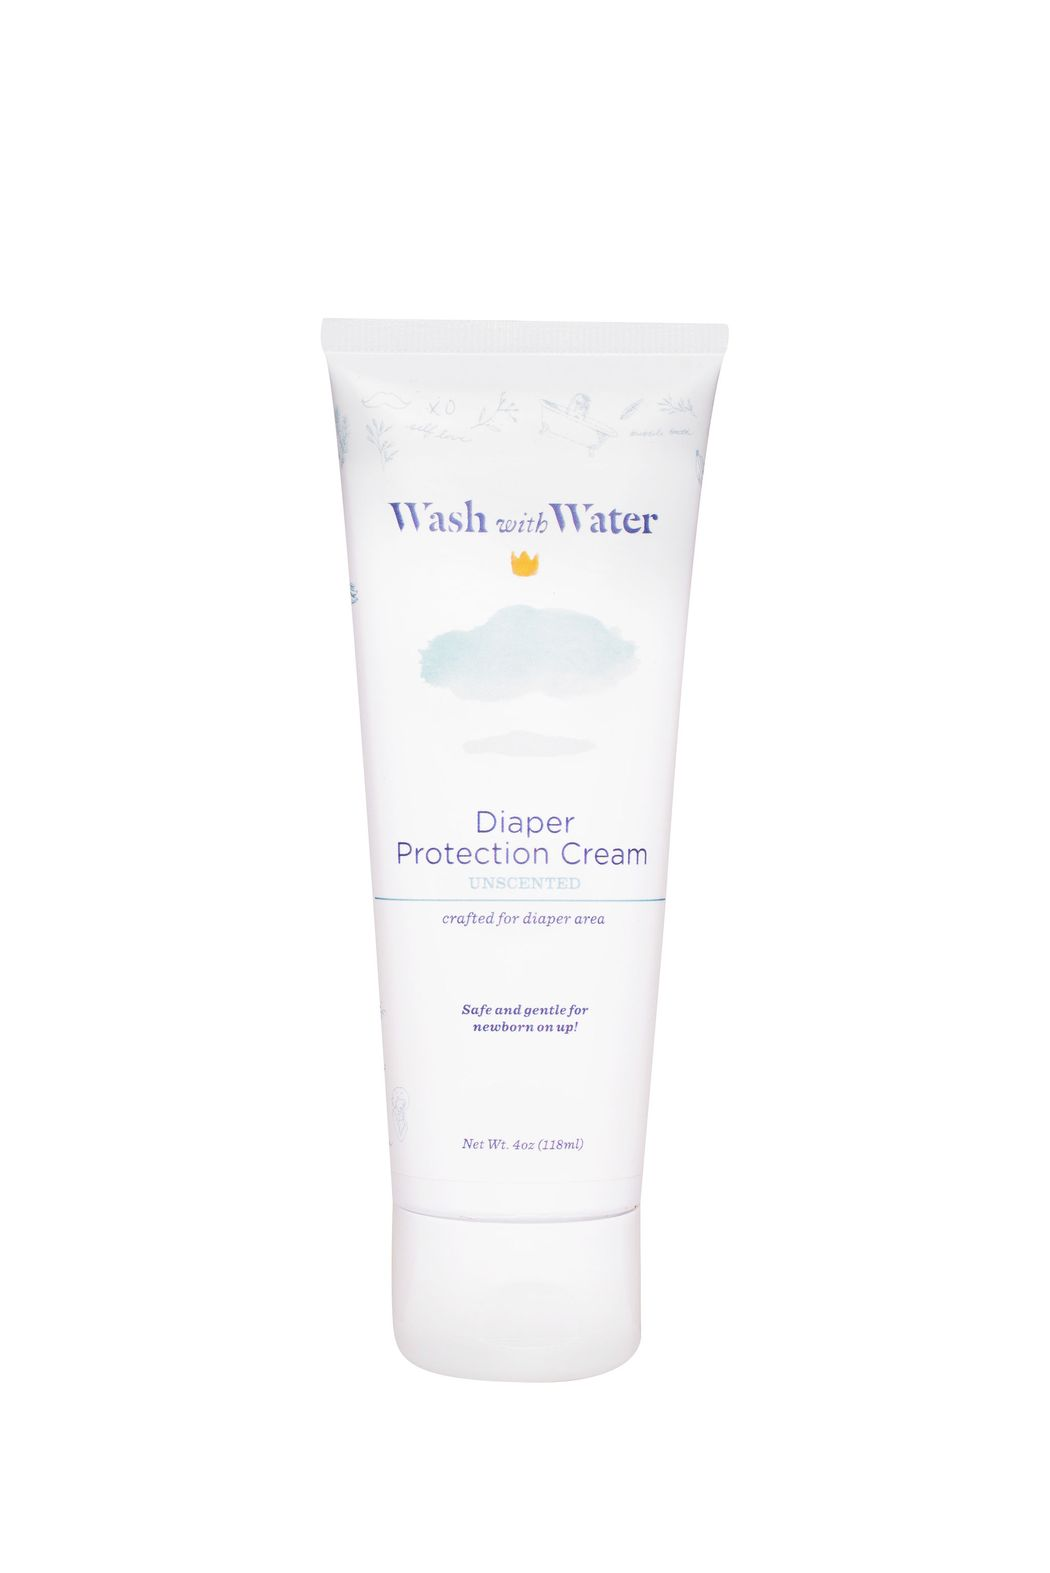 Diaper Protection Cream | unscented, 4oz tube | Wash with Water